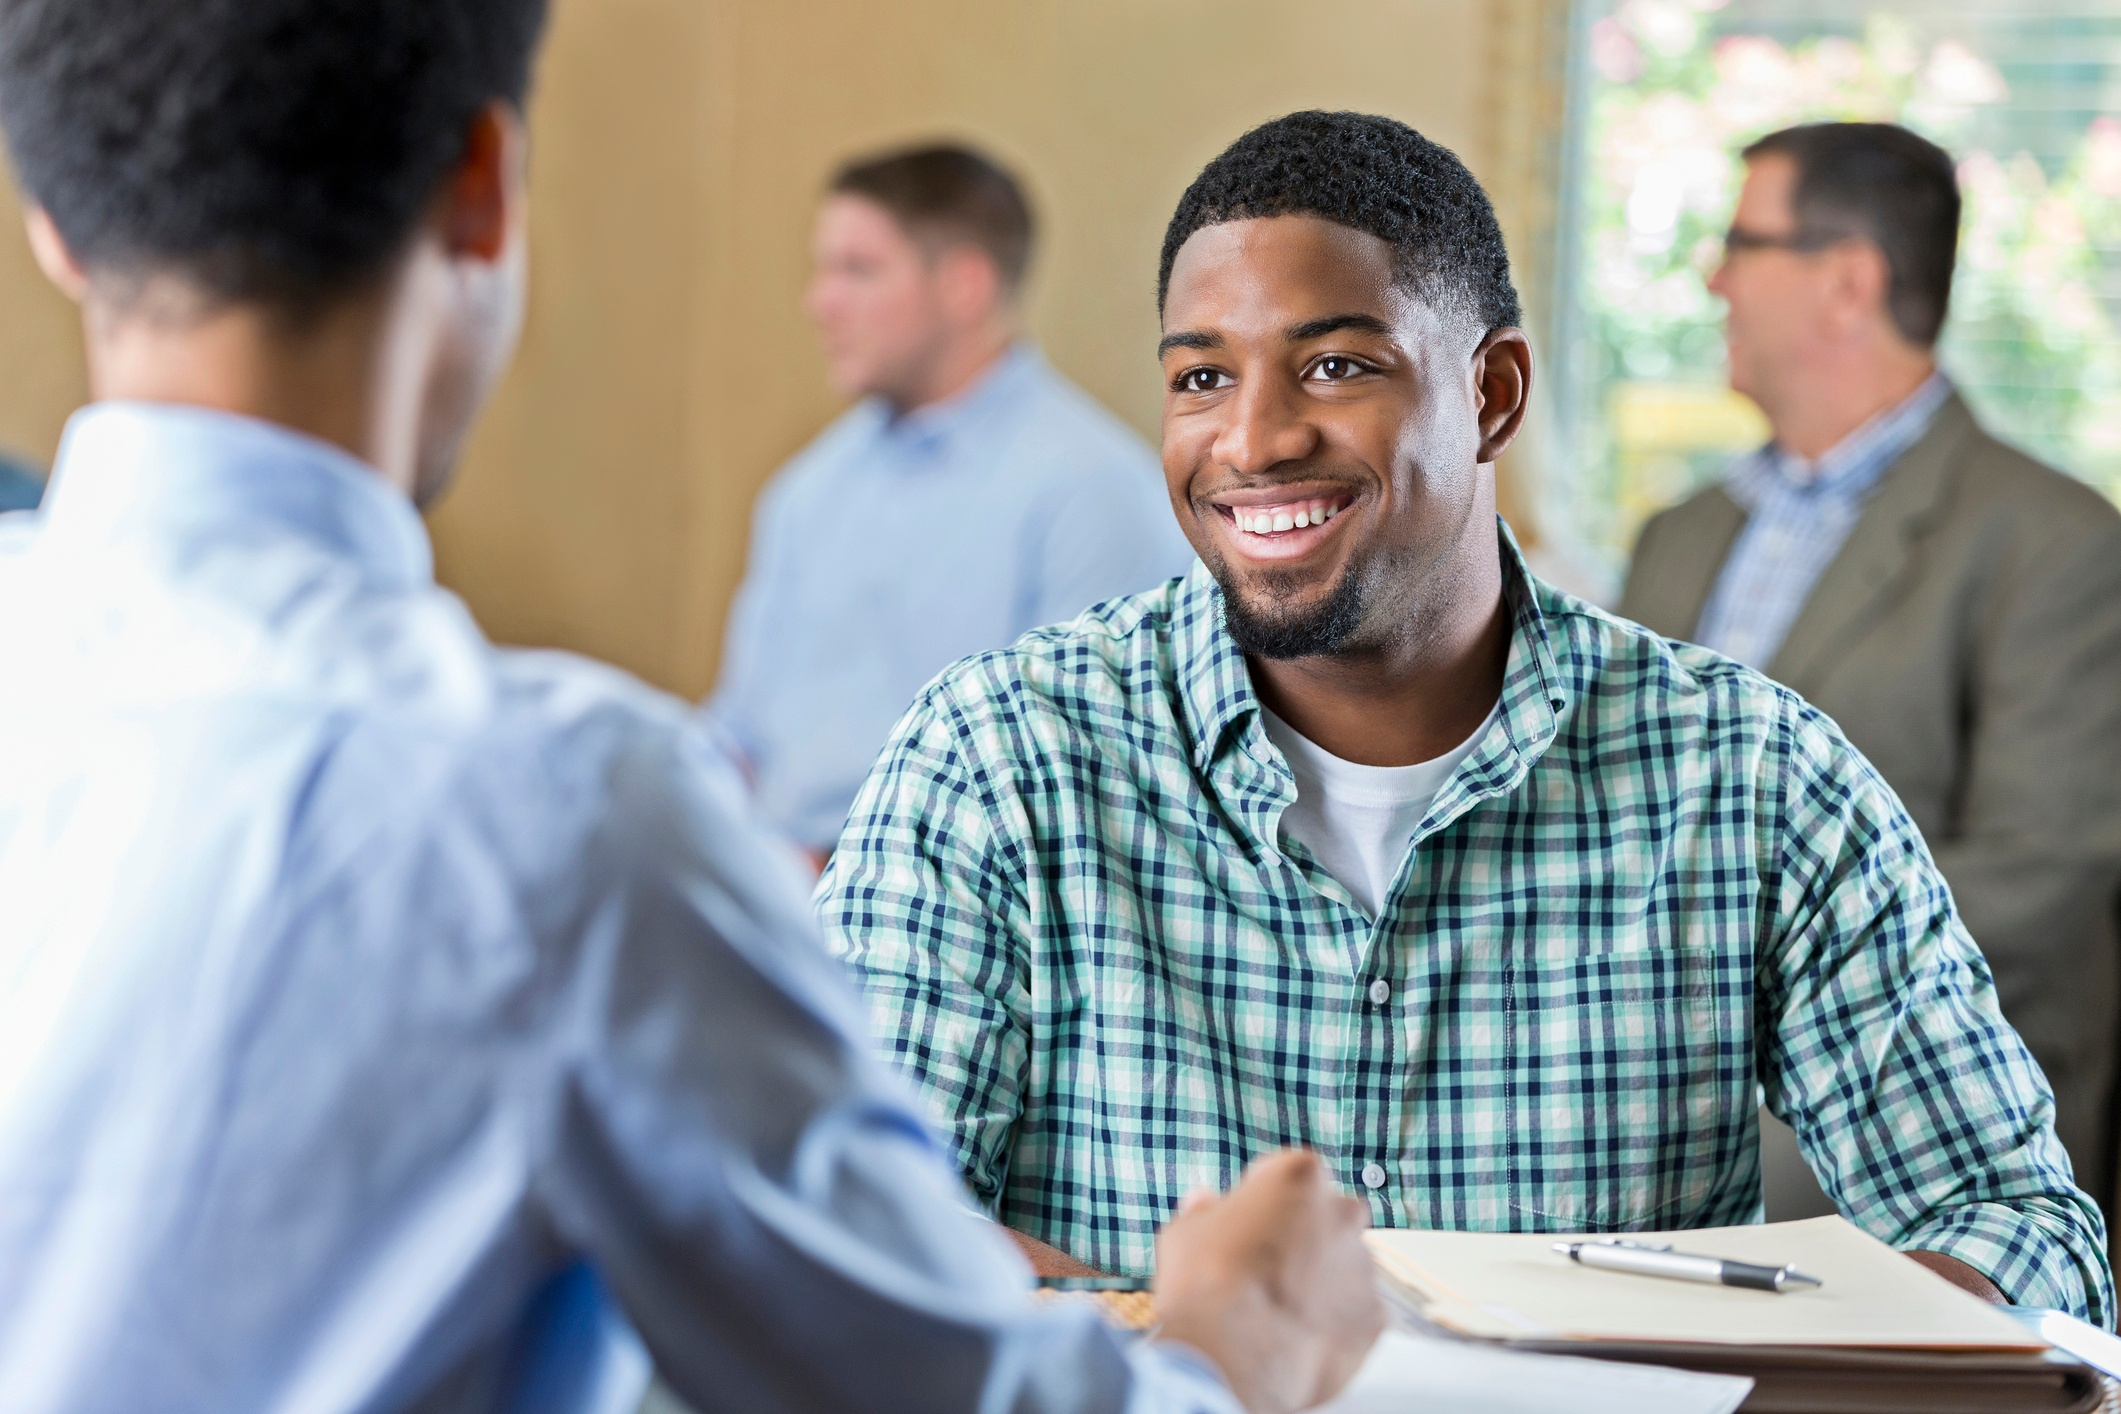 5 Questions for Hiring Managers to Ask During a Recent Grad Interview